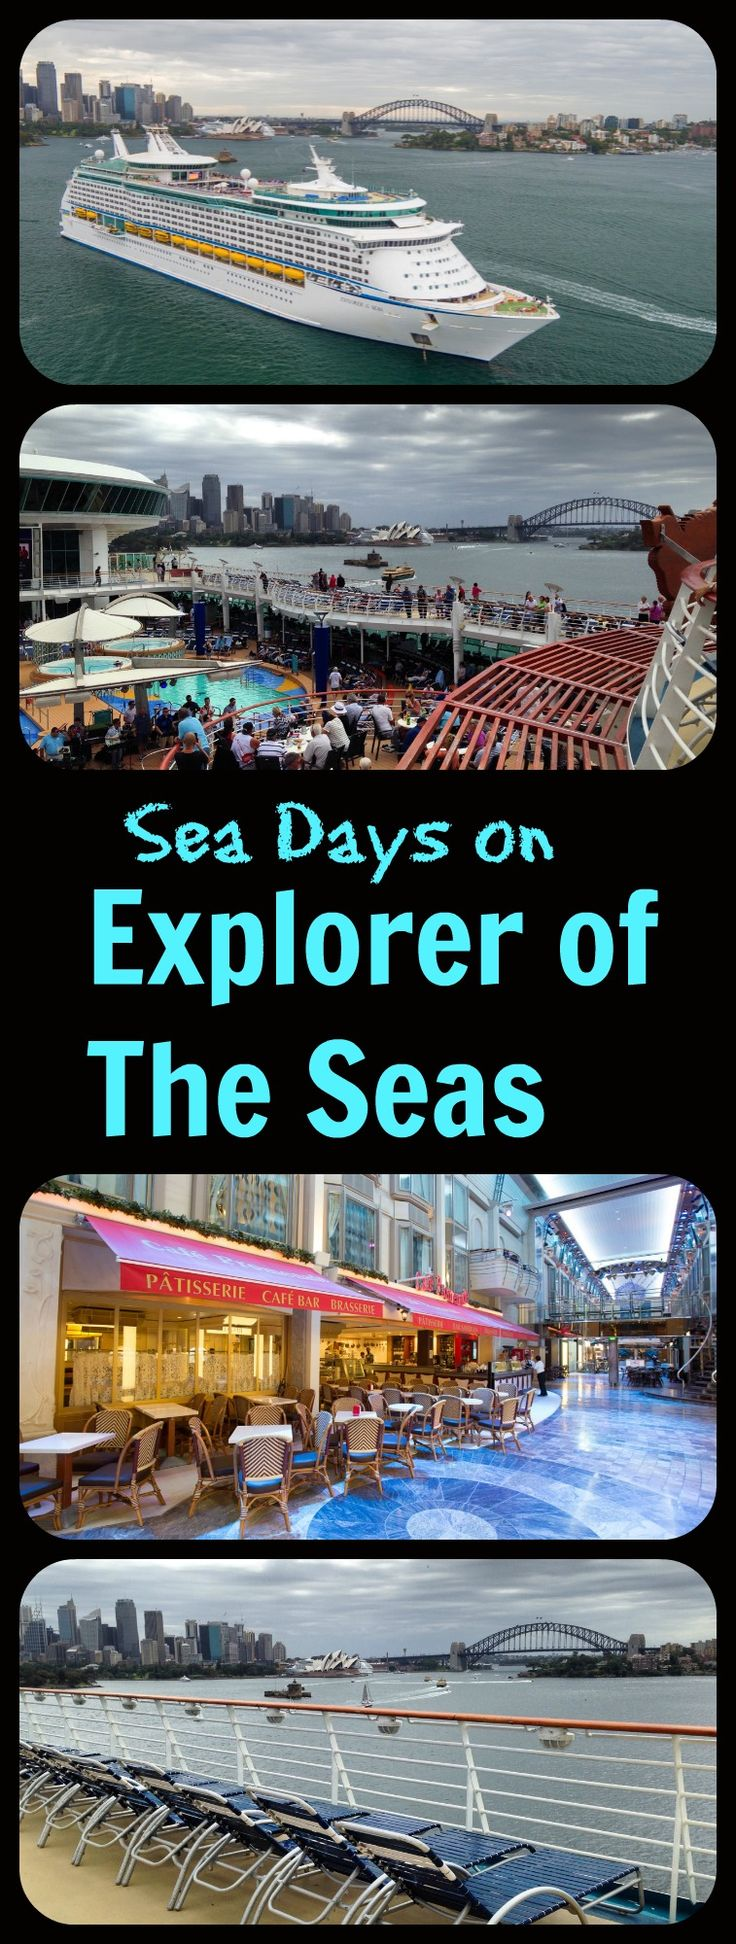 She's the biggest ship to ever be based in Australia, but with so much to do what's the best way to spend your days at sea on Explorer of the Seas?